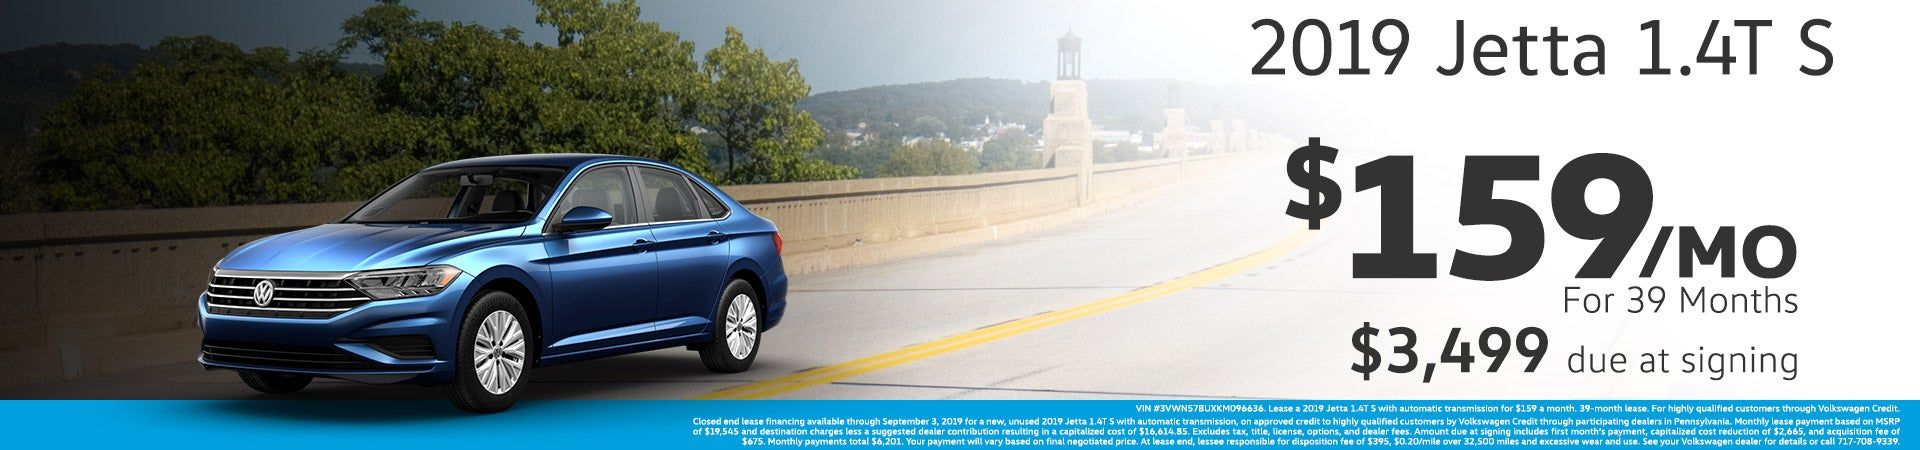 Used Car Dealerships In Lancaster Pa >> York PA Volkswagen dealer serving York - New and Used